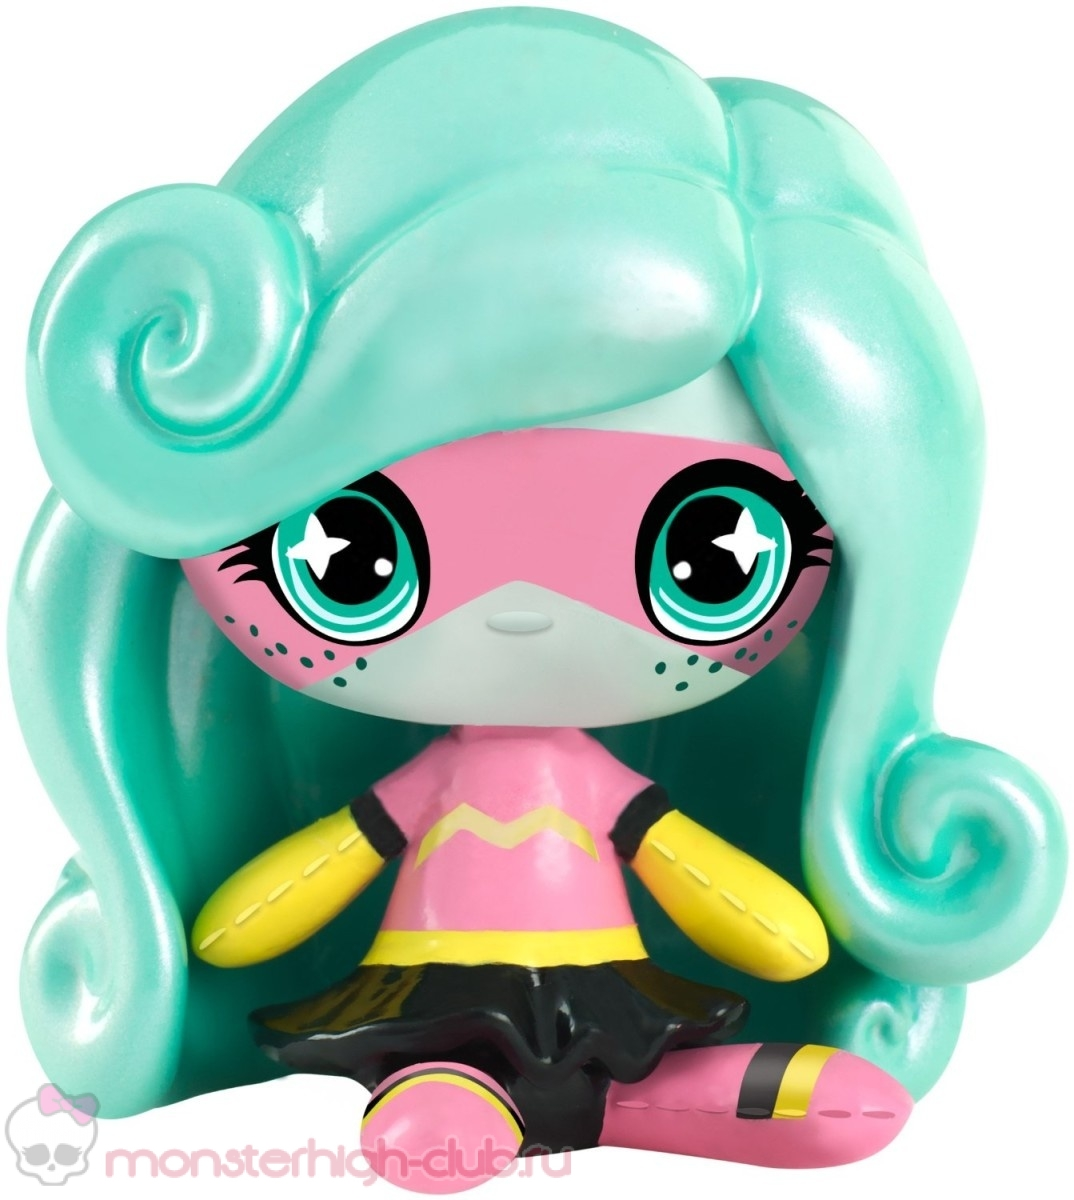 monster_high_minis_draculaura_lagoona_power_ghouls_promo (3)